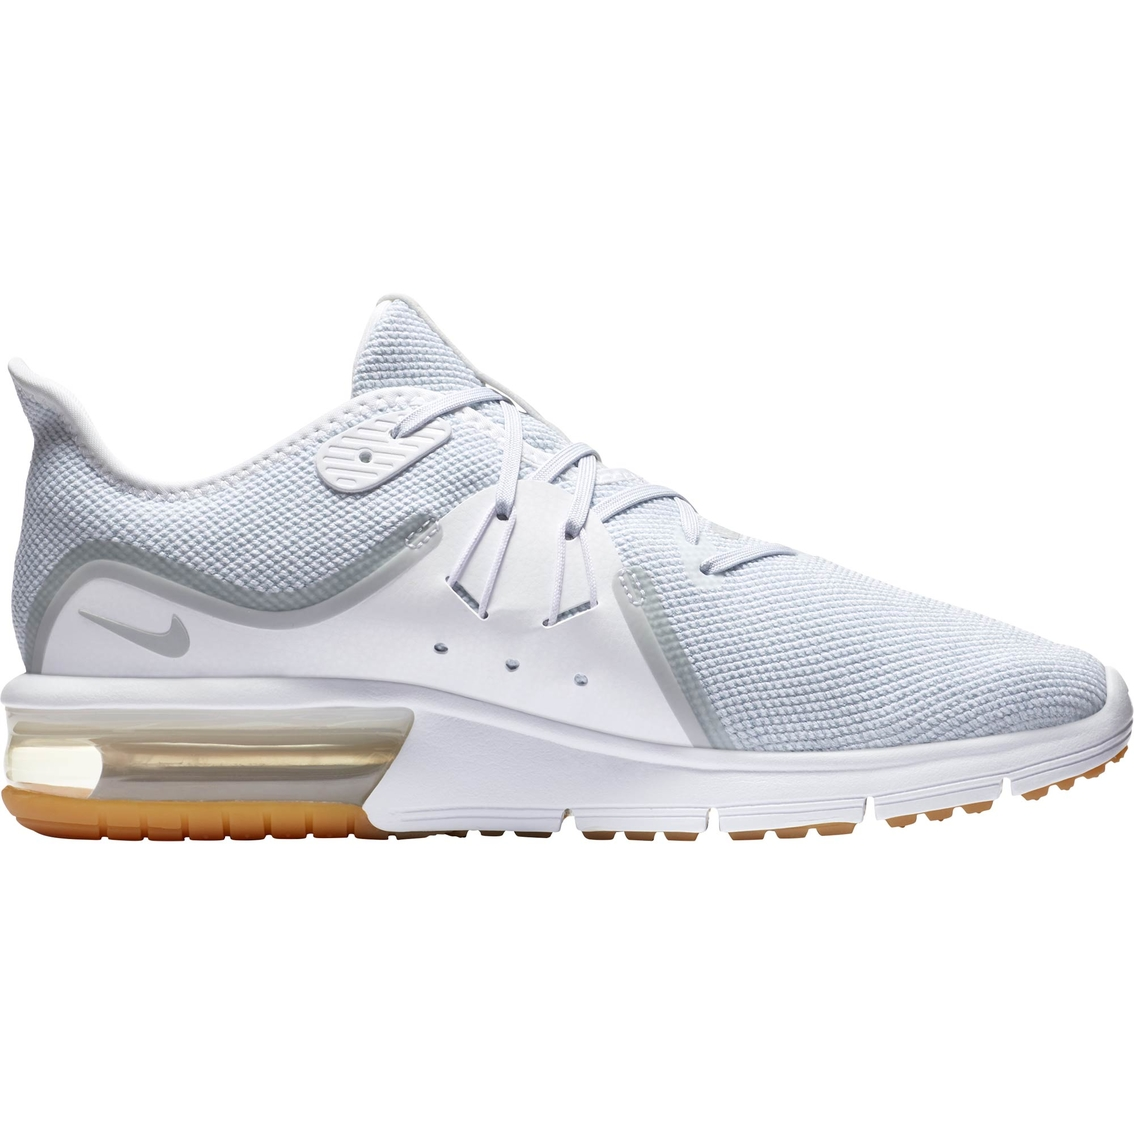 Nike Men's Air Max Sequent 3 Running Shoes   Running   Shoes ...